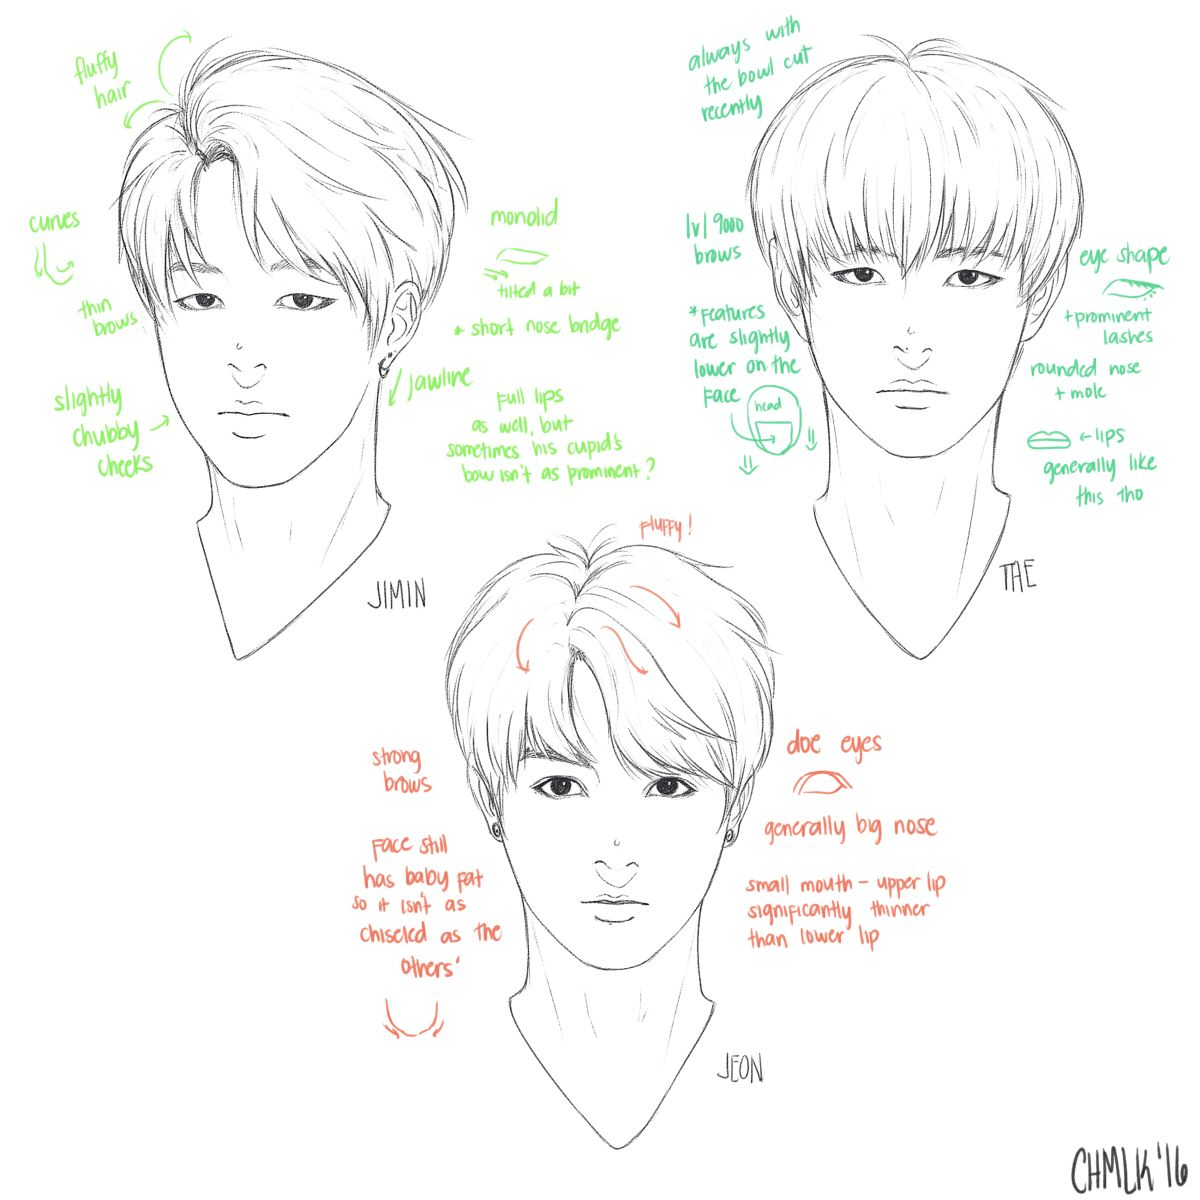 My Personal Bangtan Cheat Sheet Aka What I Need To Keep In Mind When Drawing Them Bts Drawings Bts Fanart Bts